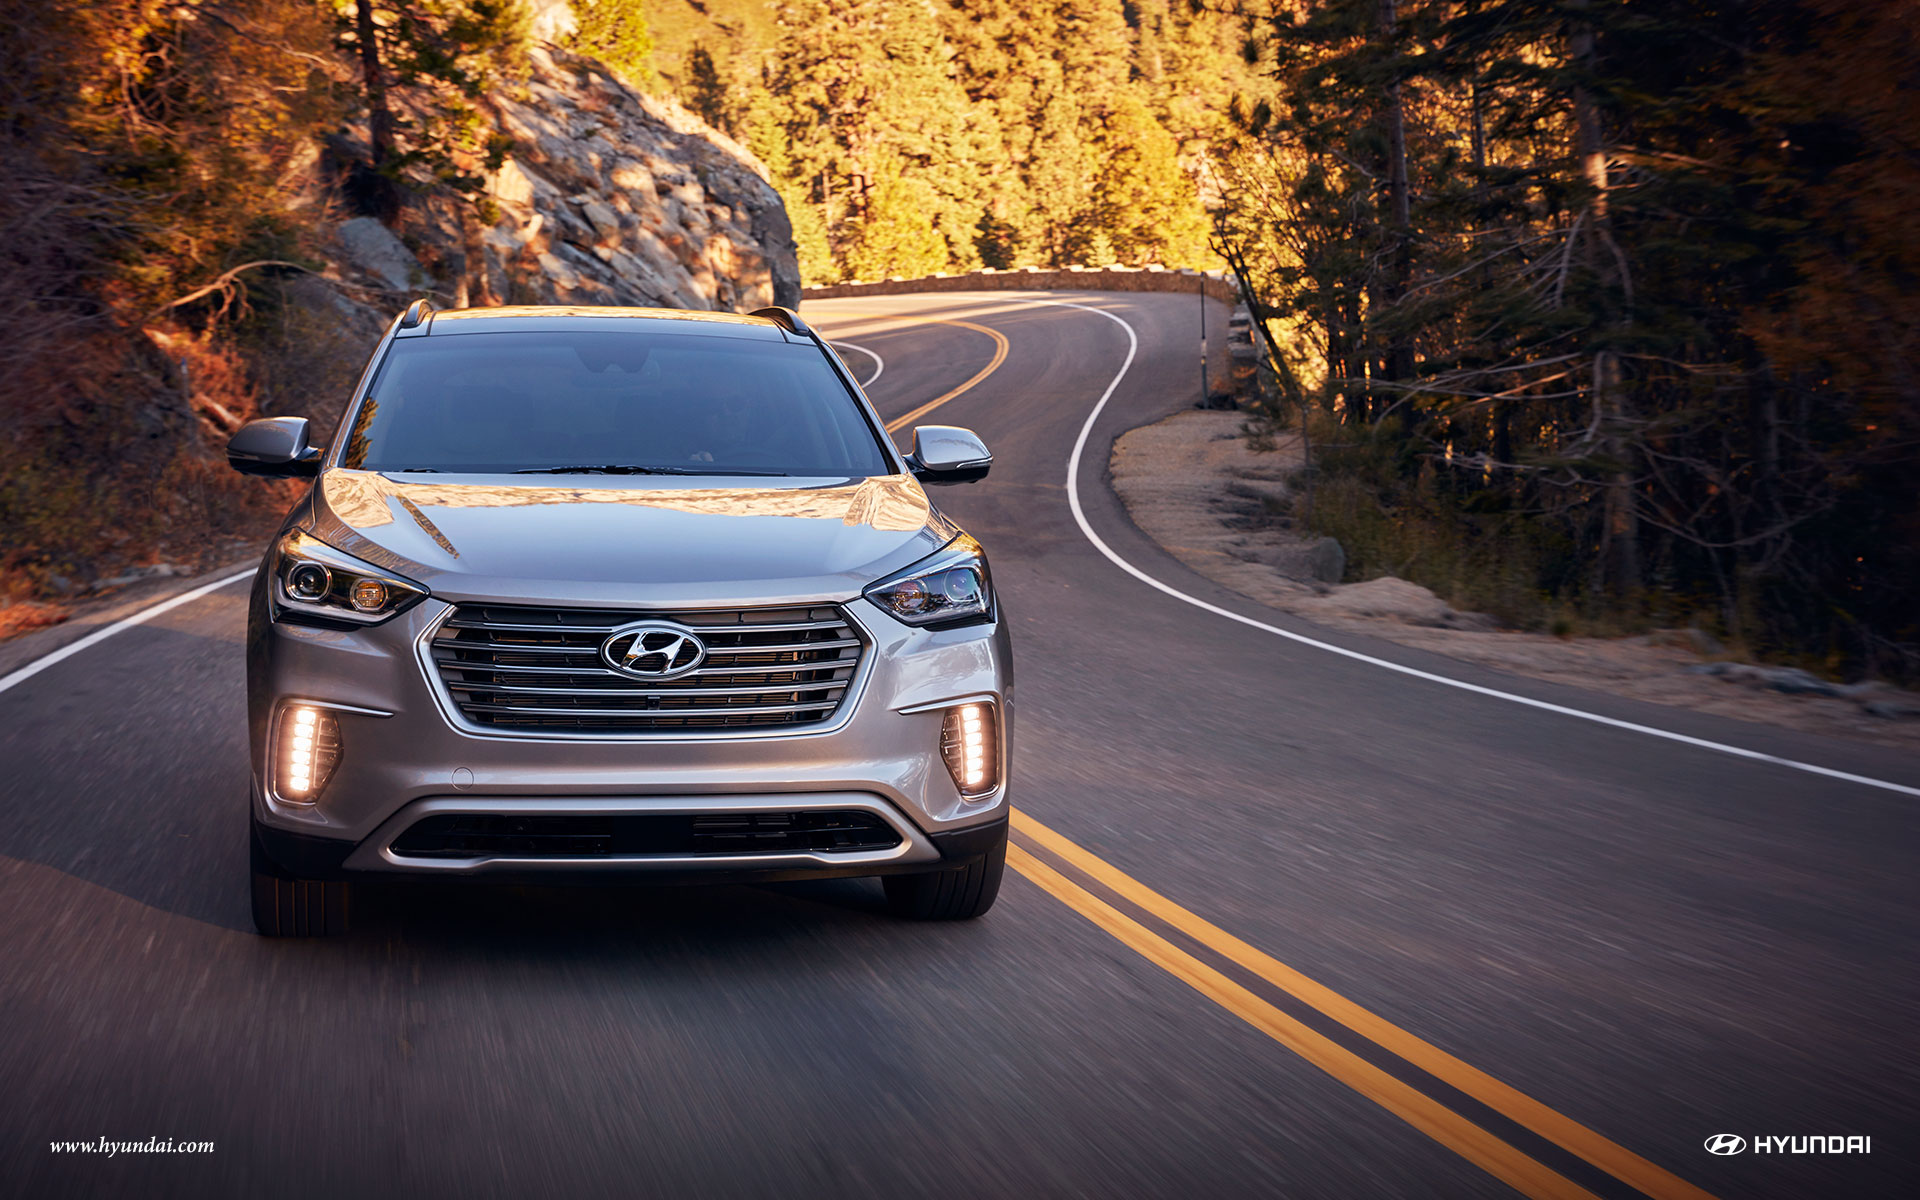 Michigan - 2018 Hyundai Santa Fe's Overview